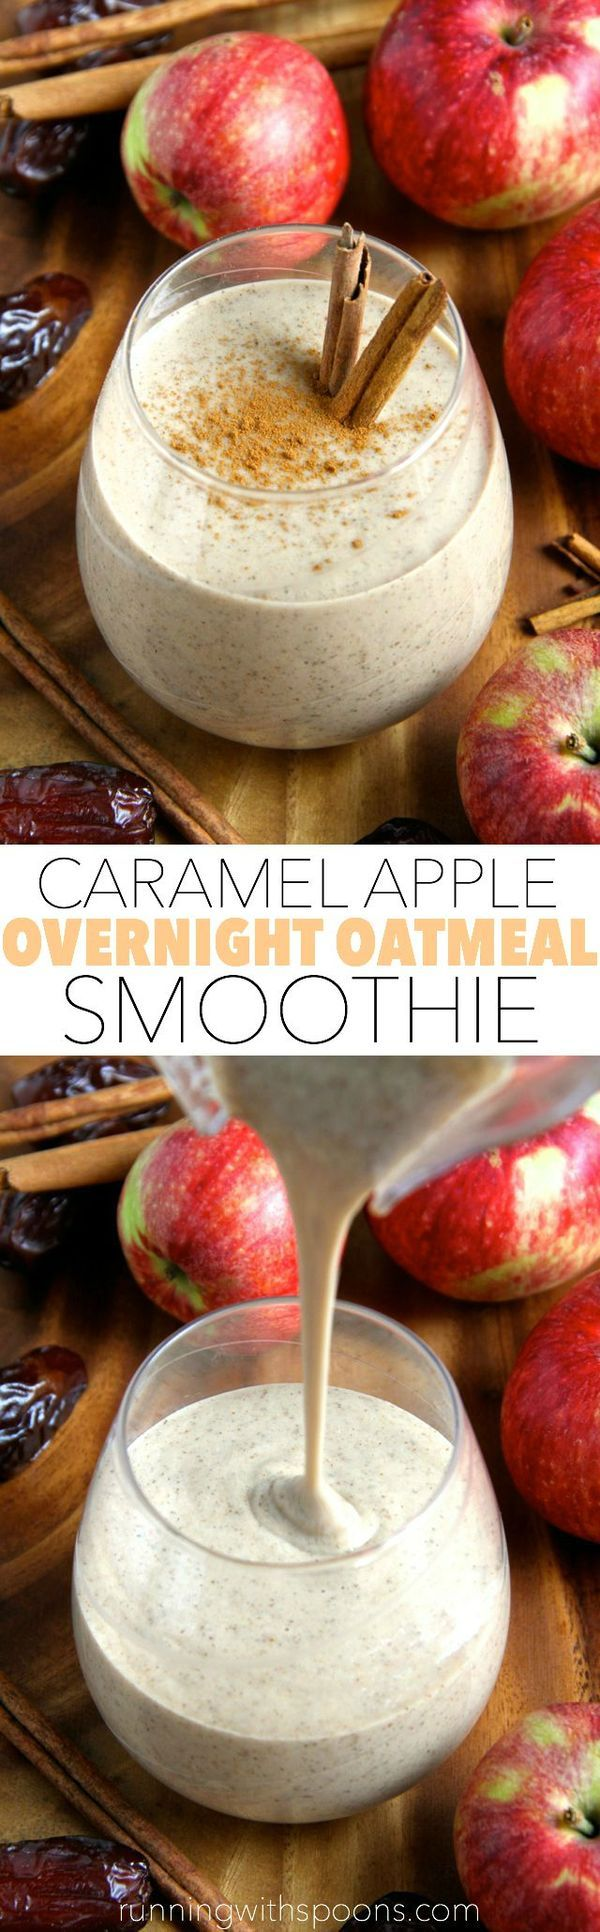 This Caramel Apple Overnight Oatmeal Smoothie is smooth, creamy and sure to keep you satisfied for hours! This comforting fall-inspired smoothie recipe makes a perfect healthy breakfast or snack!